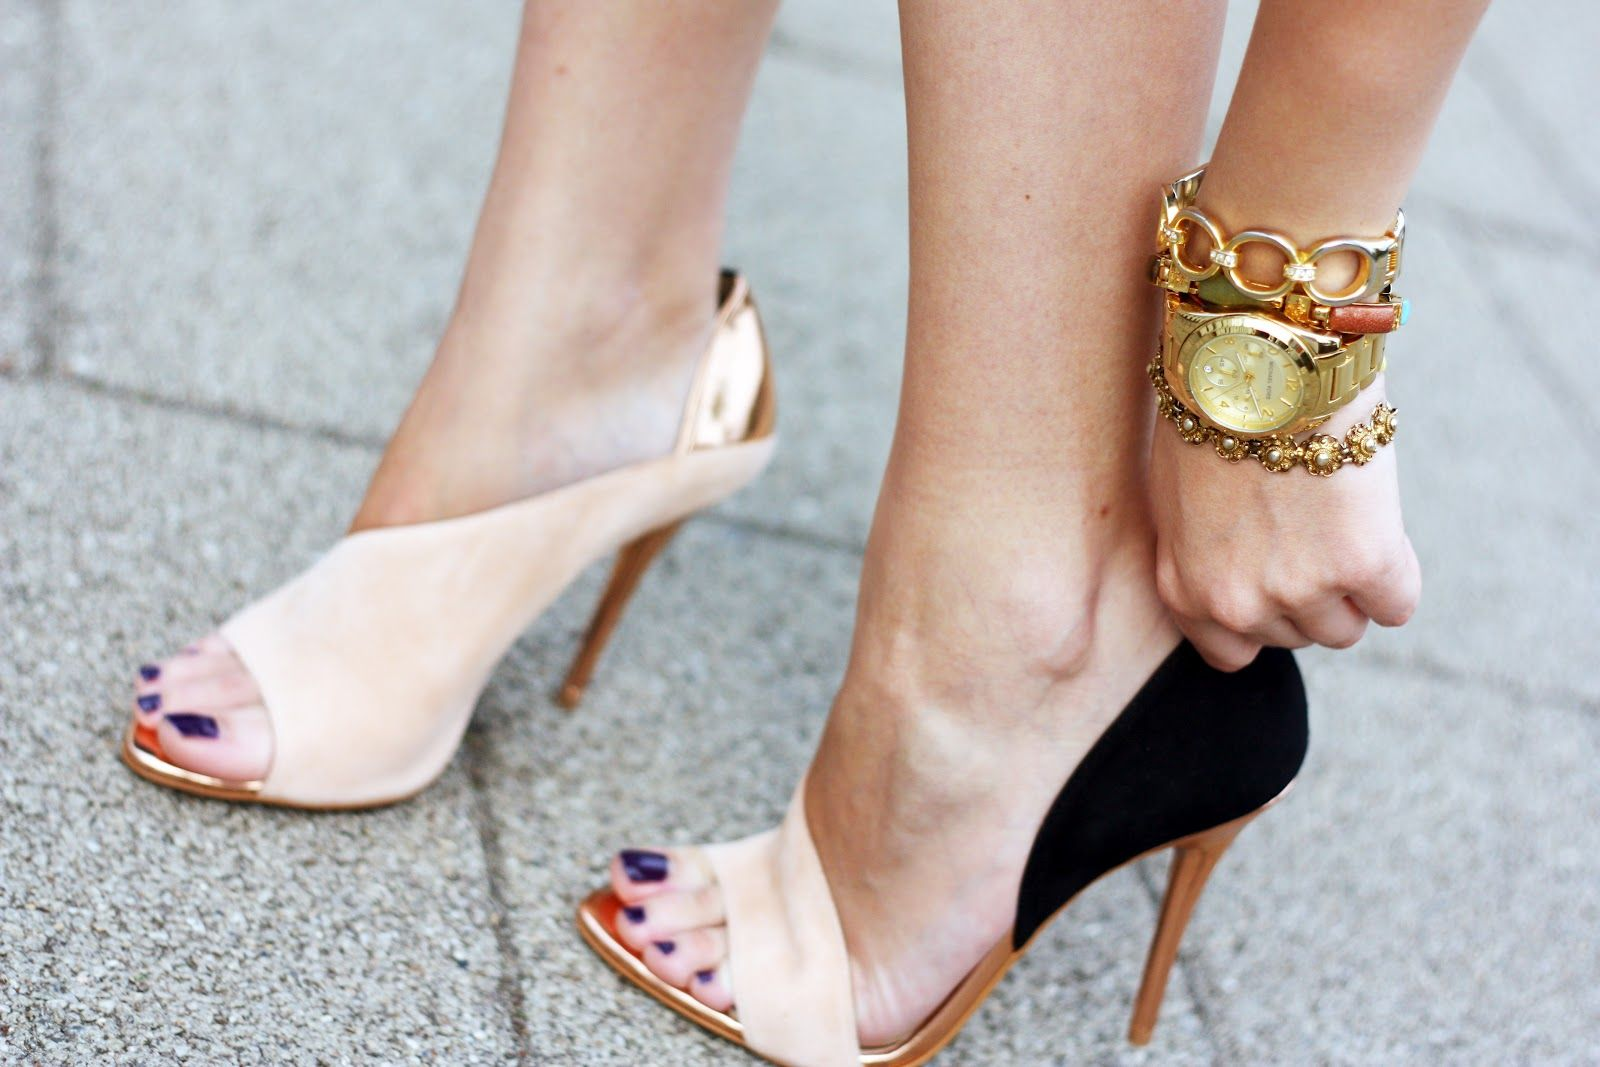 Black sandals littlewoods - 17 Best Images About Shoes On Pinterest Jeffrey Campbell Zara And Tennis Elbow